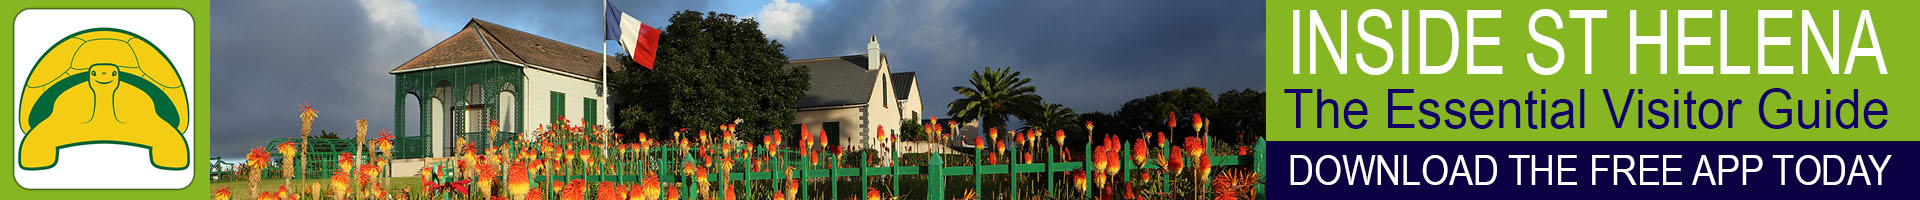 Inside St Helena - The Essential Visitor Guide